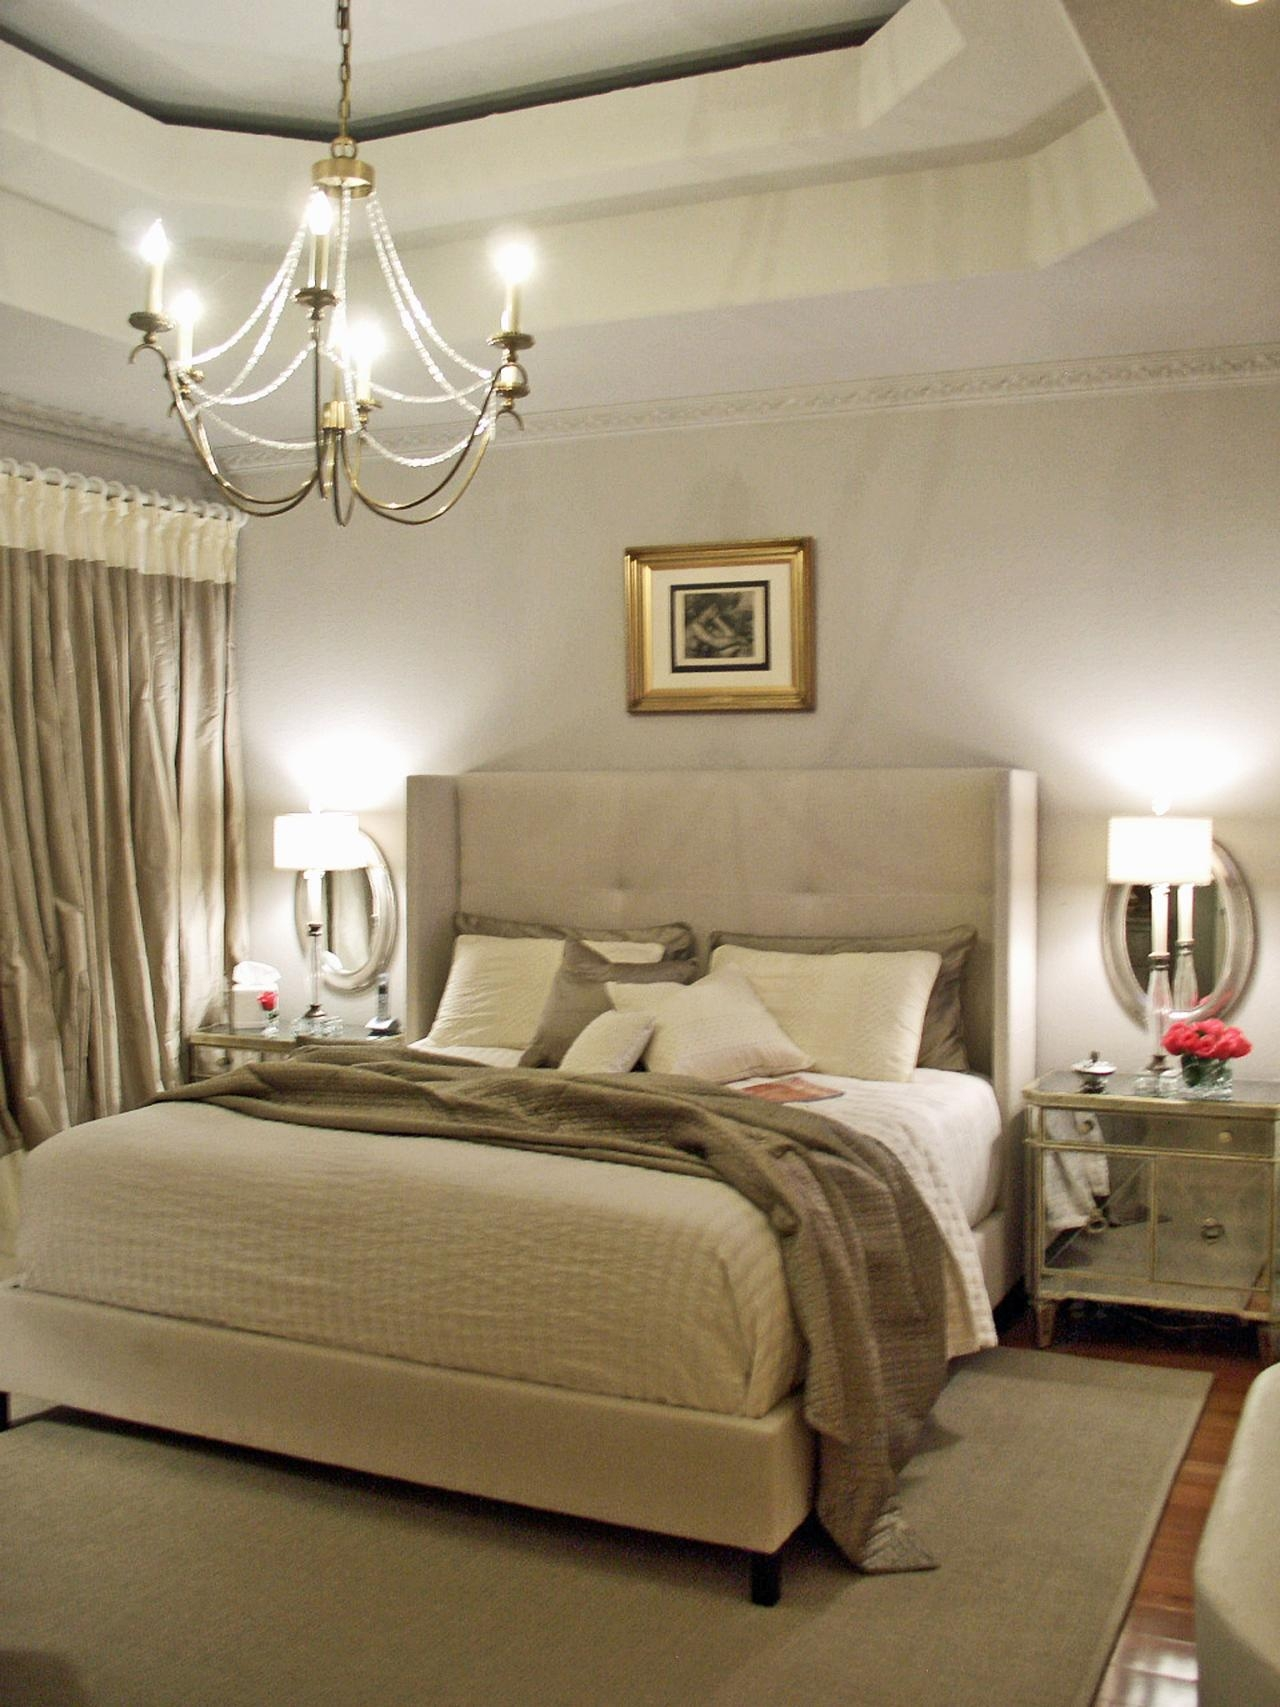 20 Ideas Of Ceiling Mirrors For Bedroom